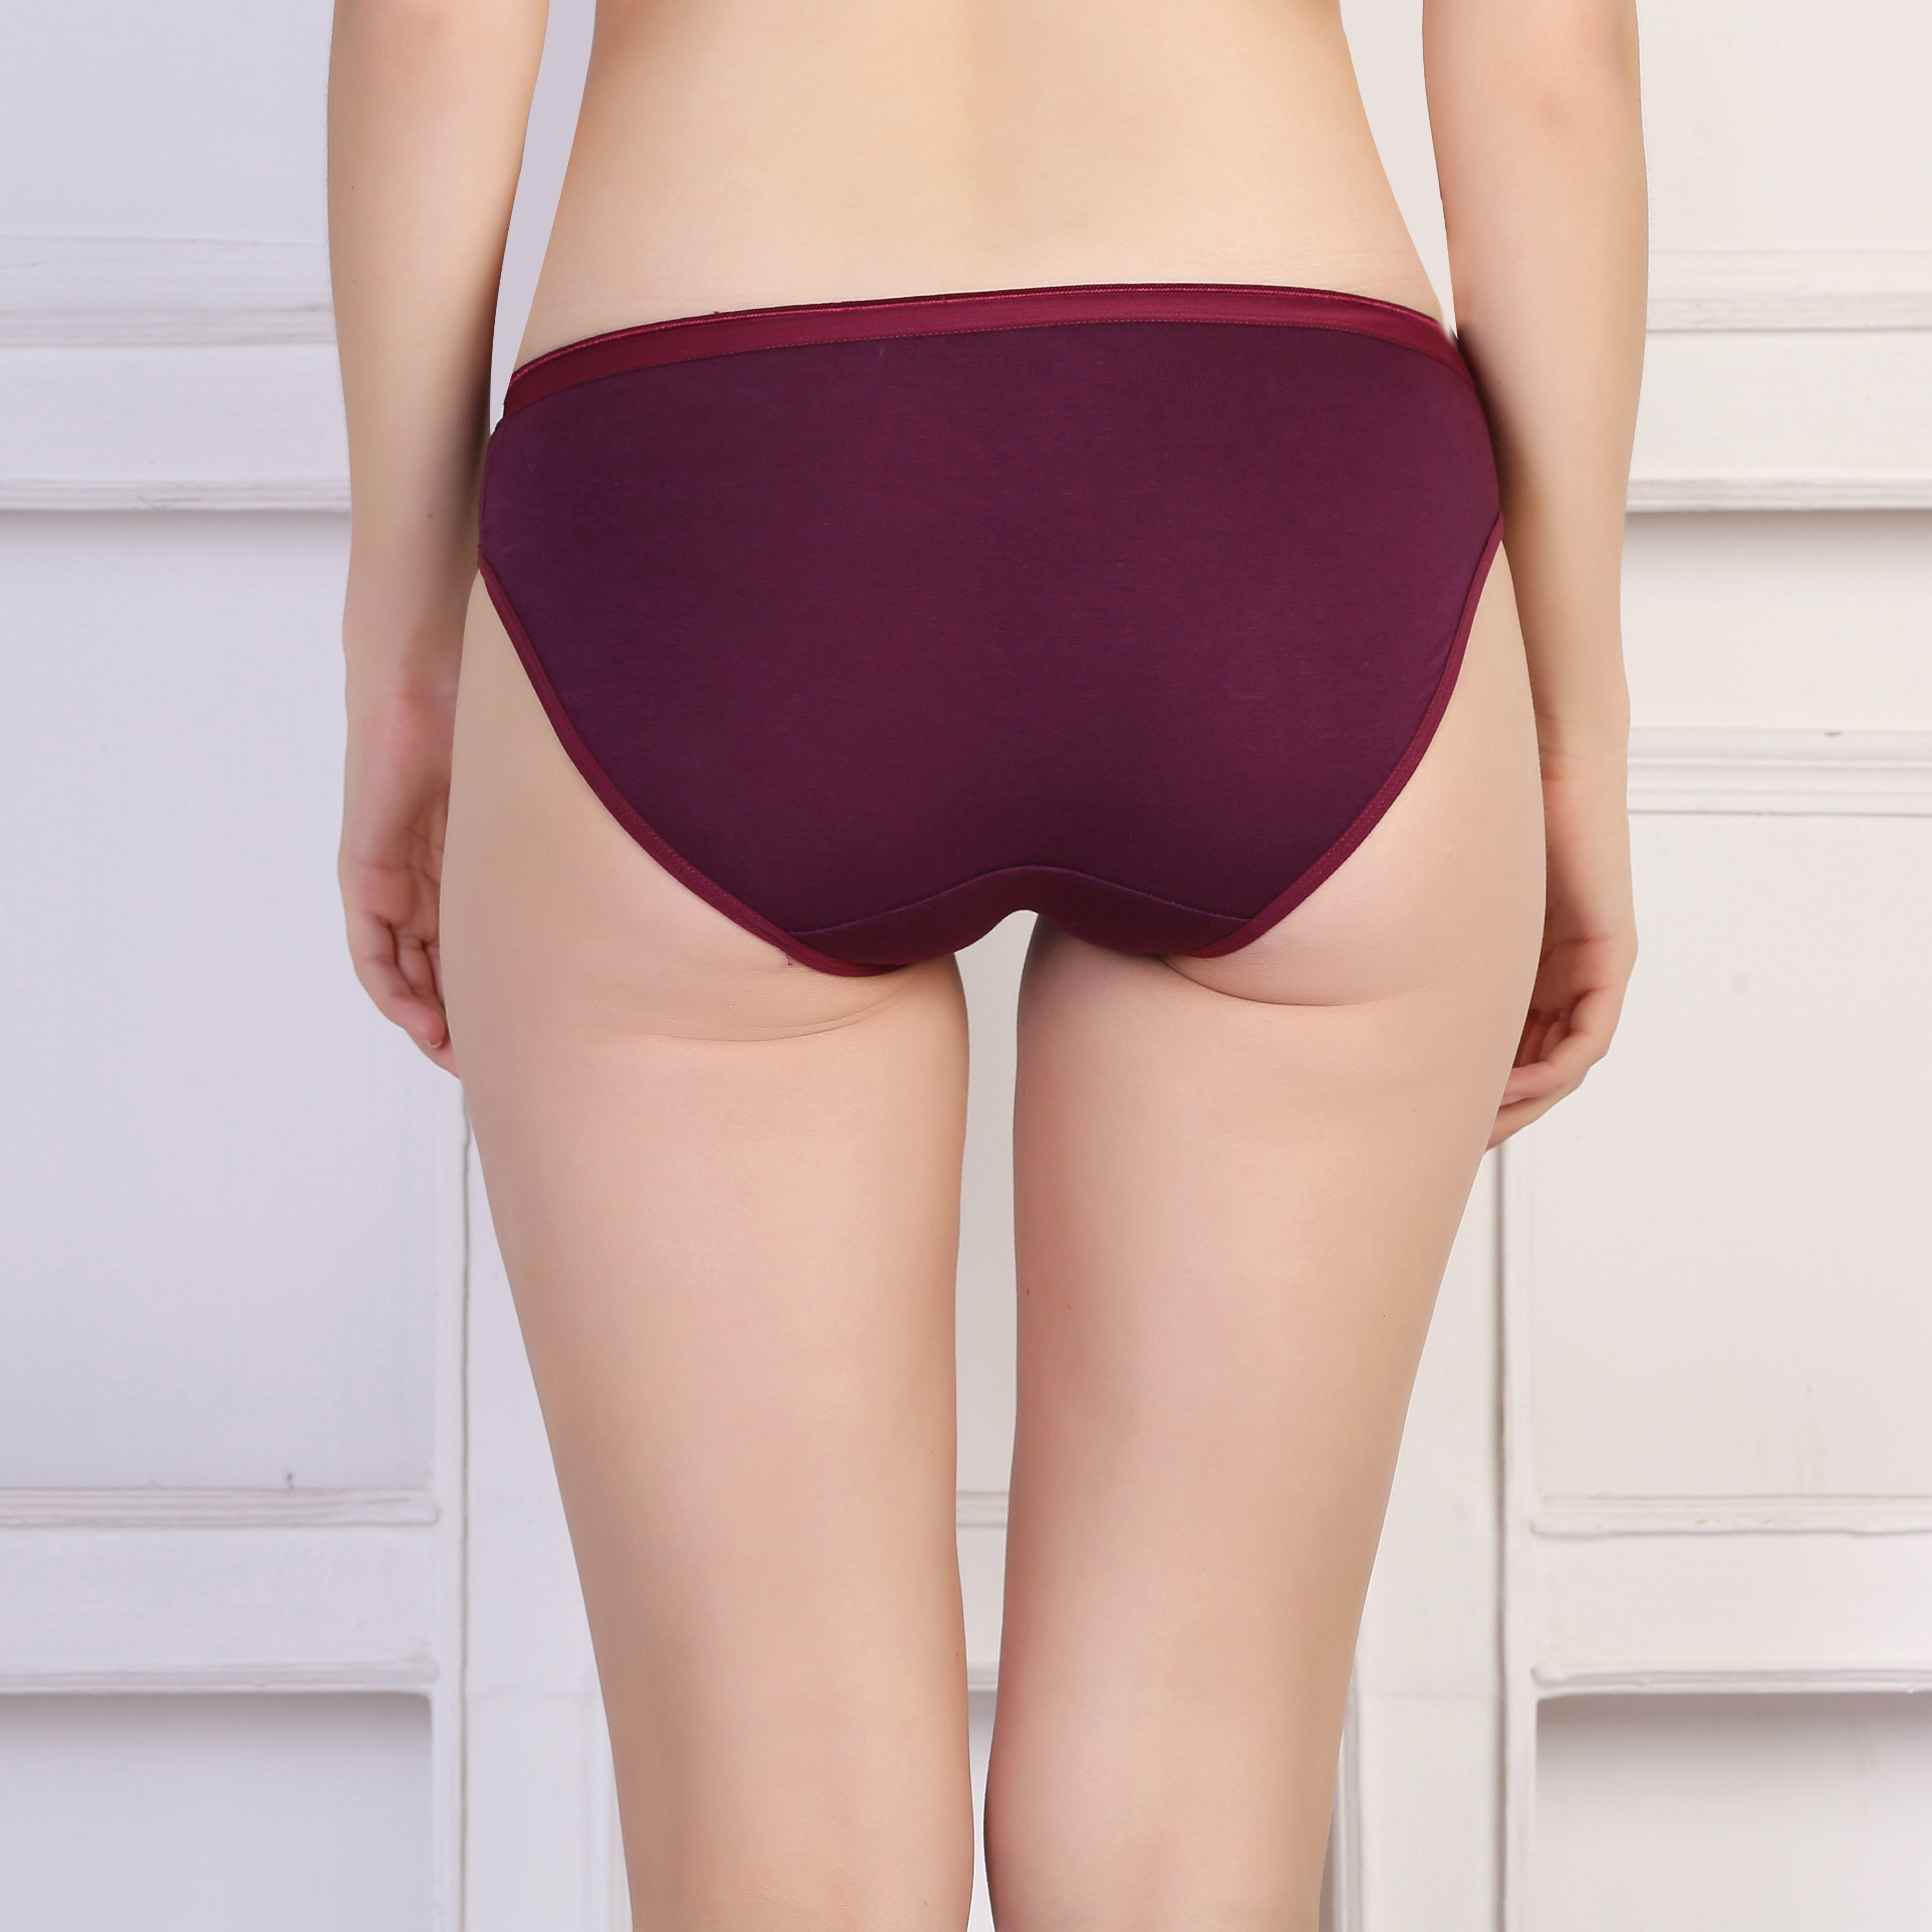 Ficuster Wine Red Blue Low Rise Cotton Bikini Panty (Pack of 3)